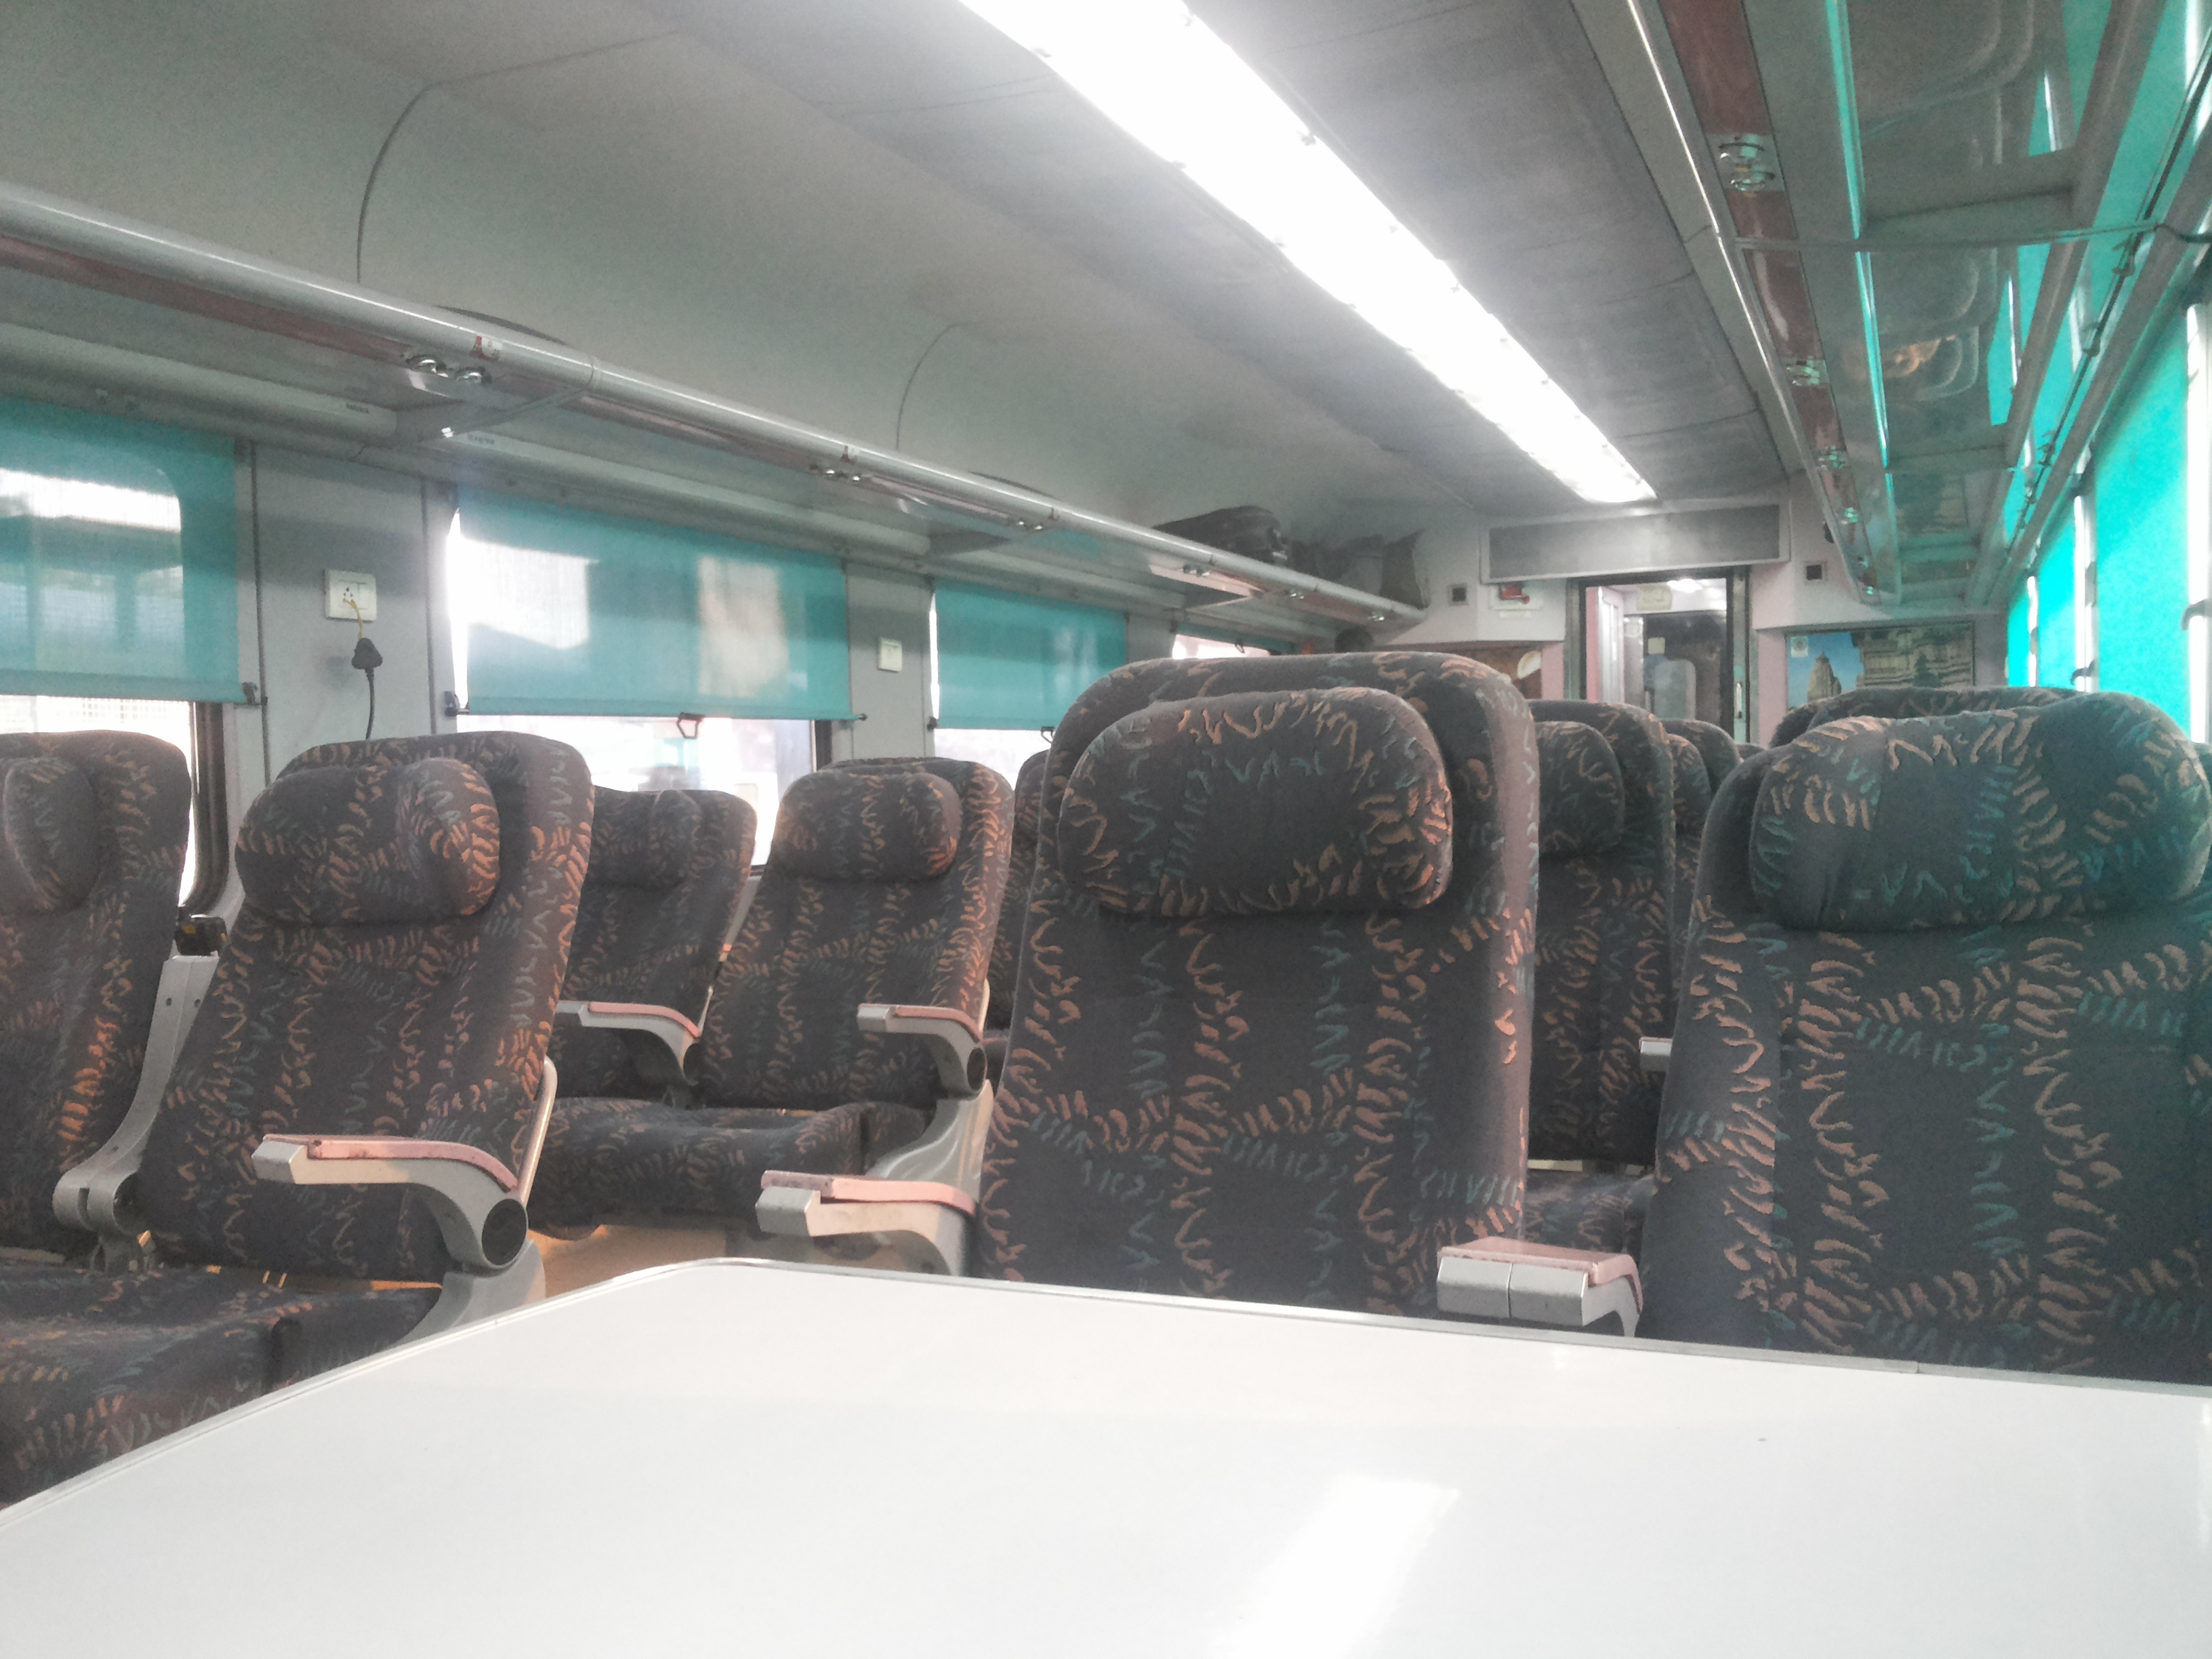 File:The Interior of the Executive Class or 1A of an LHB ... Shatabdi Express Executive Class